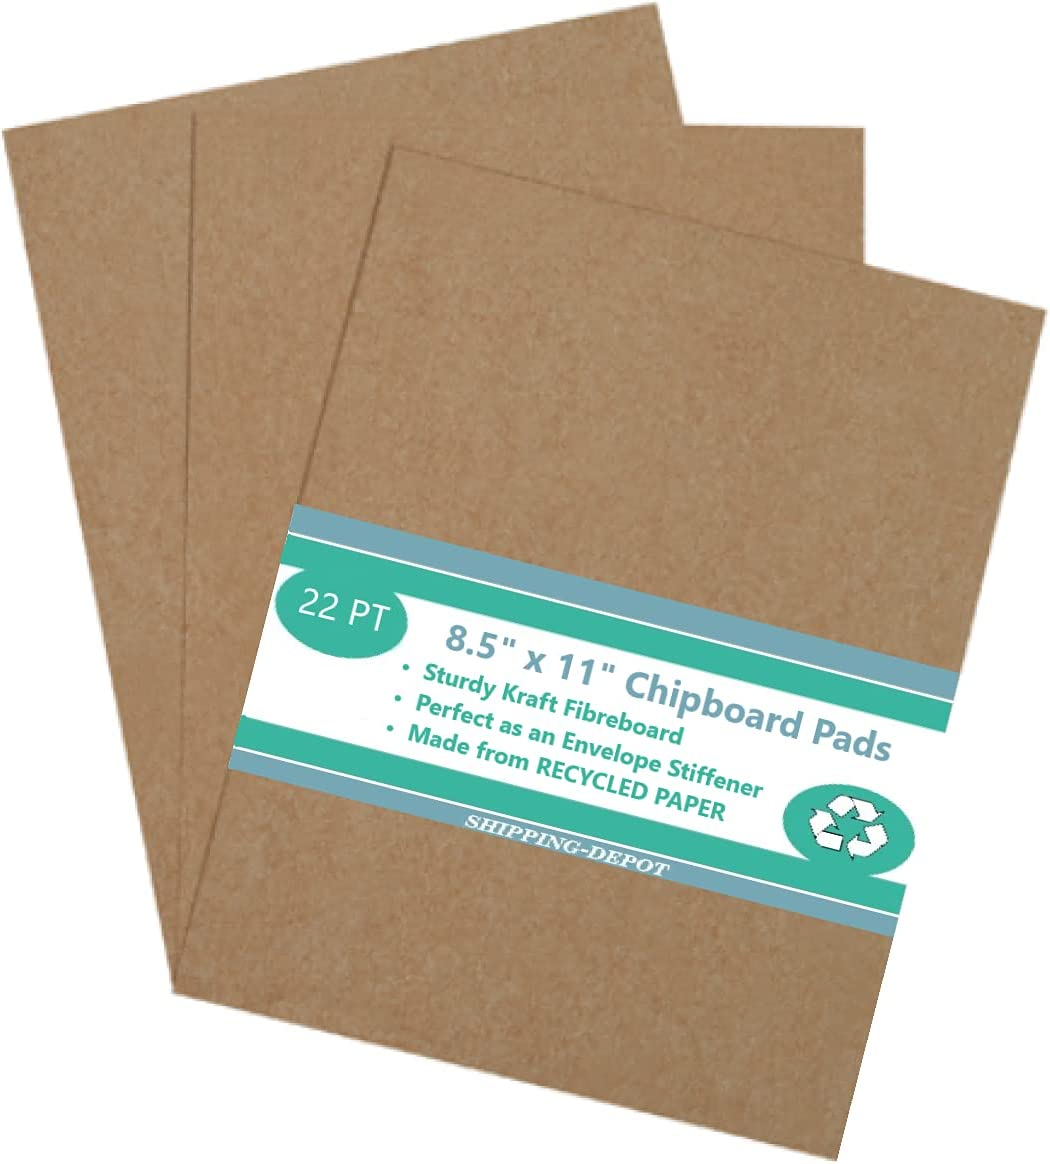 """Pack of 10 8.5x11 Brown Sale New arrival Chipboard .022"""" We Pads 22PT Medium"""